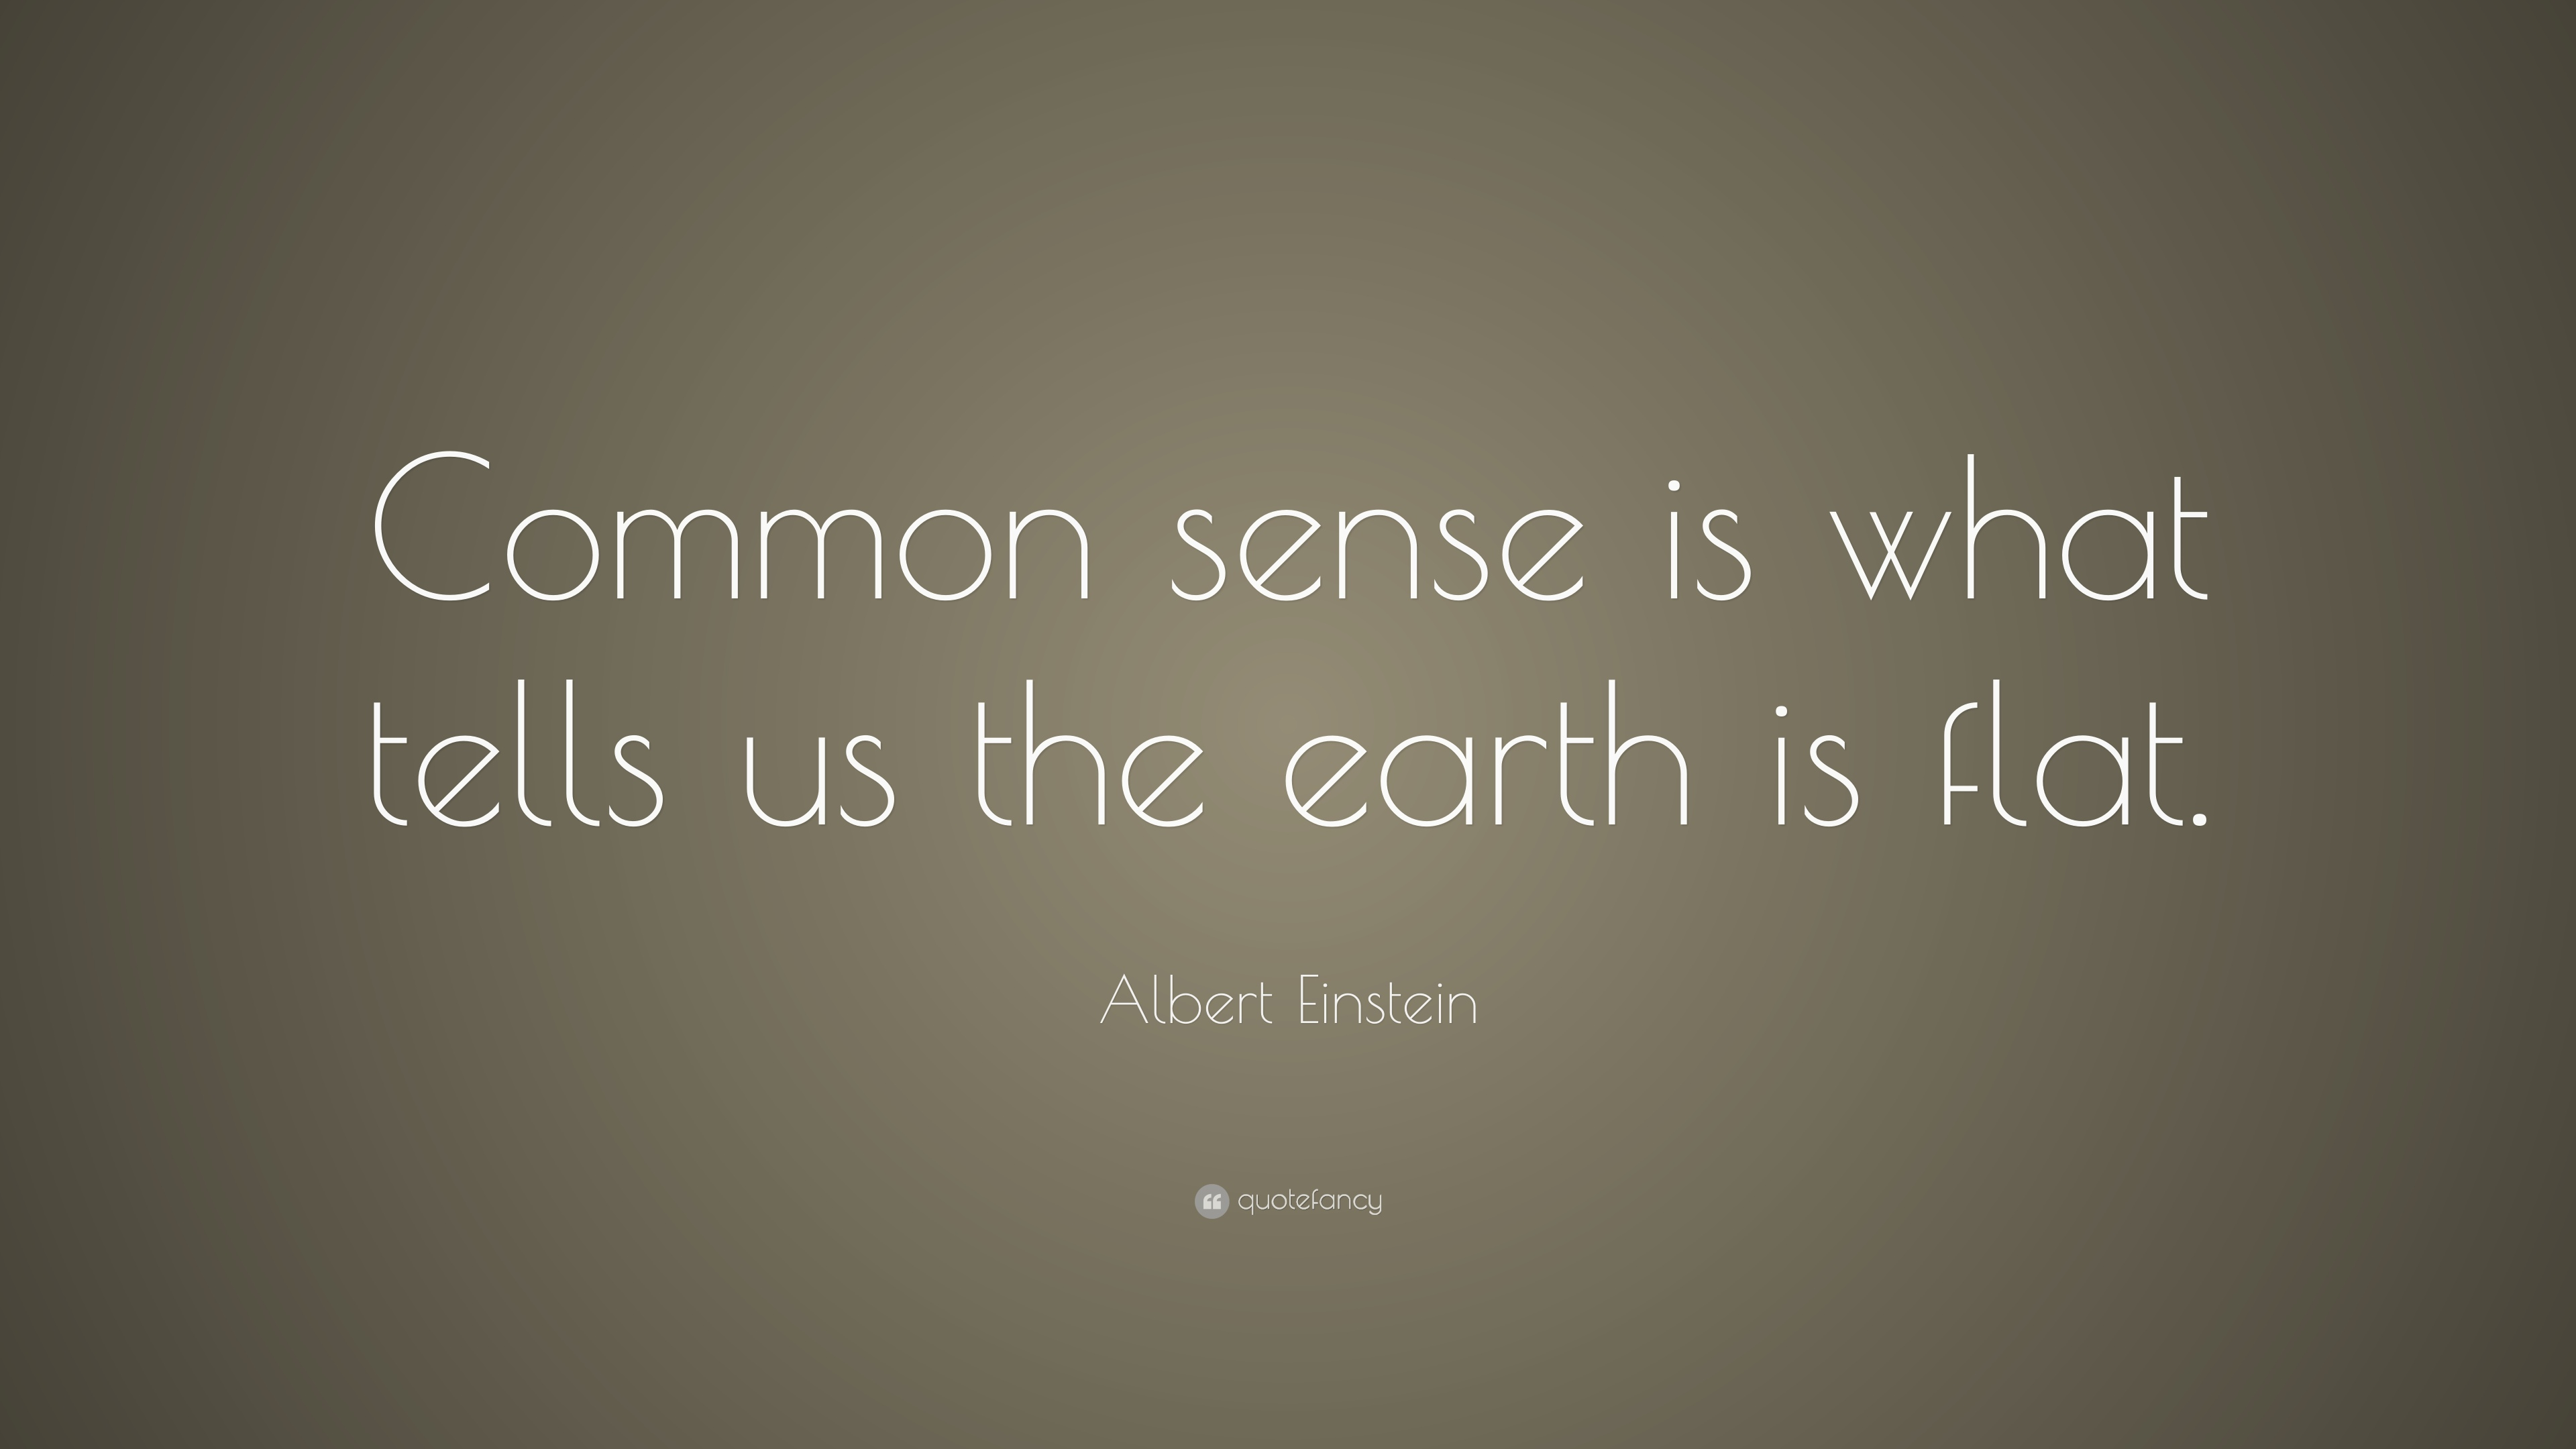 Albert Einstein Quote Common Sense Is What Tells Us The Earth Is Flat